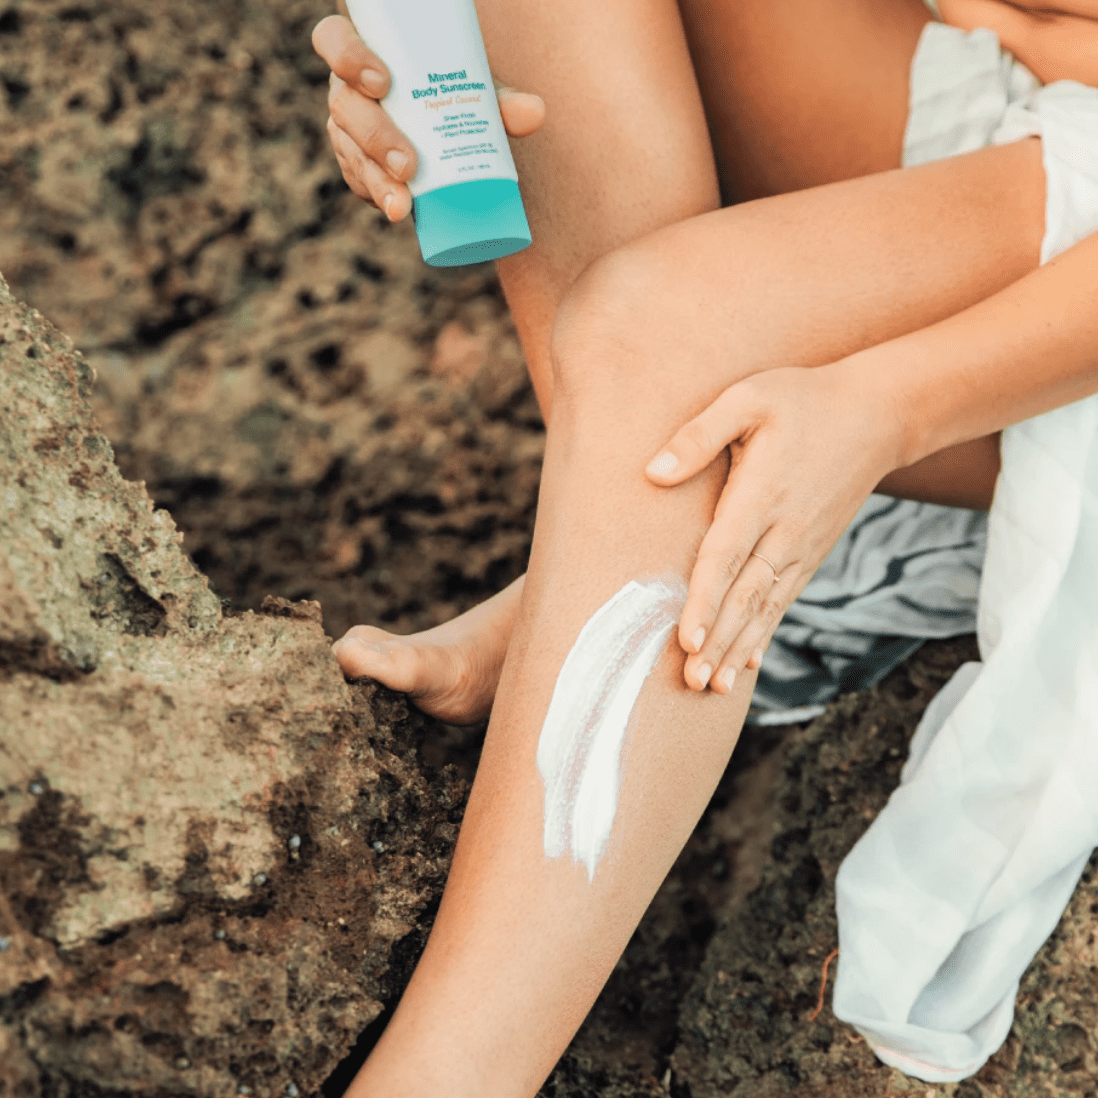 Vegan Sunscreens to Safely Protect Skin